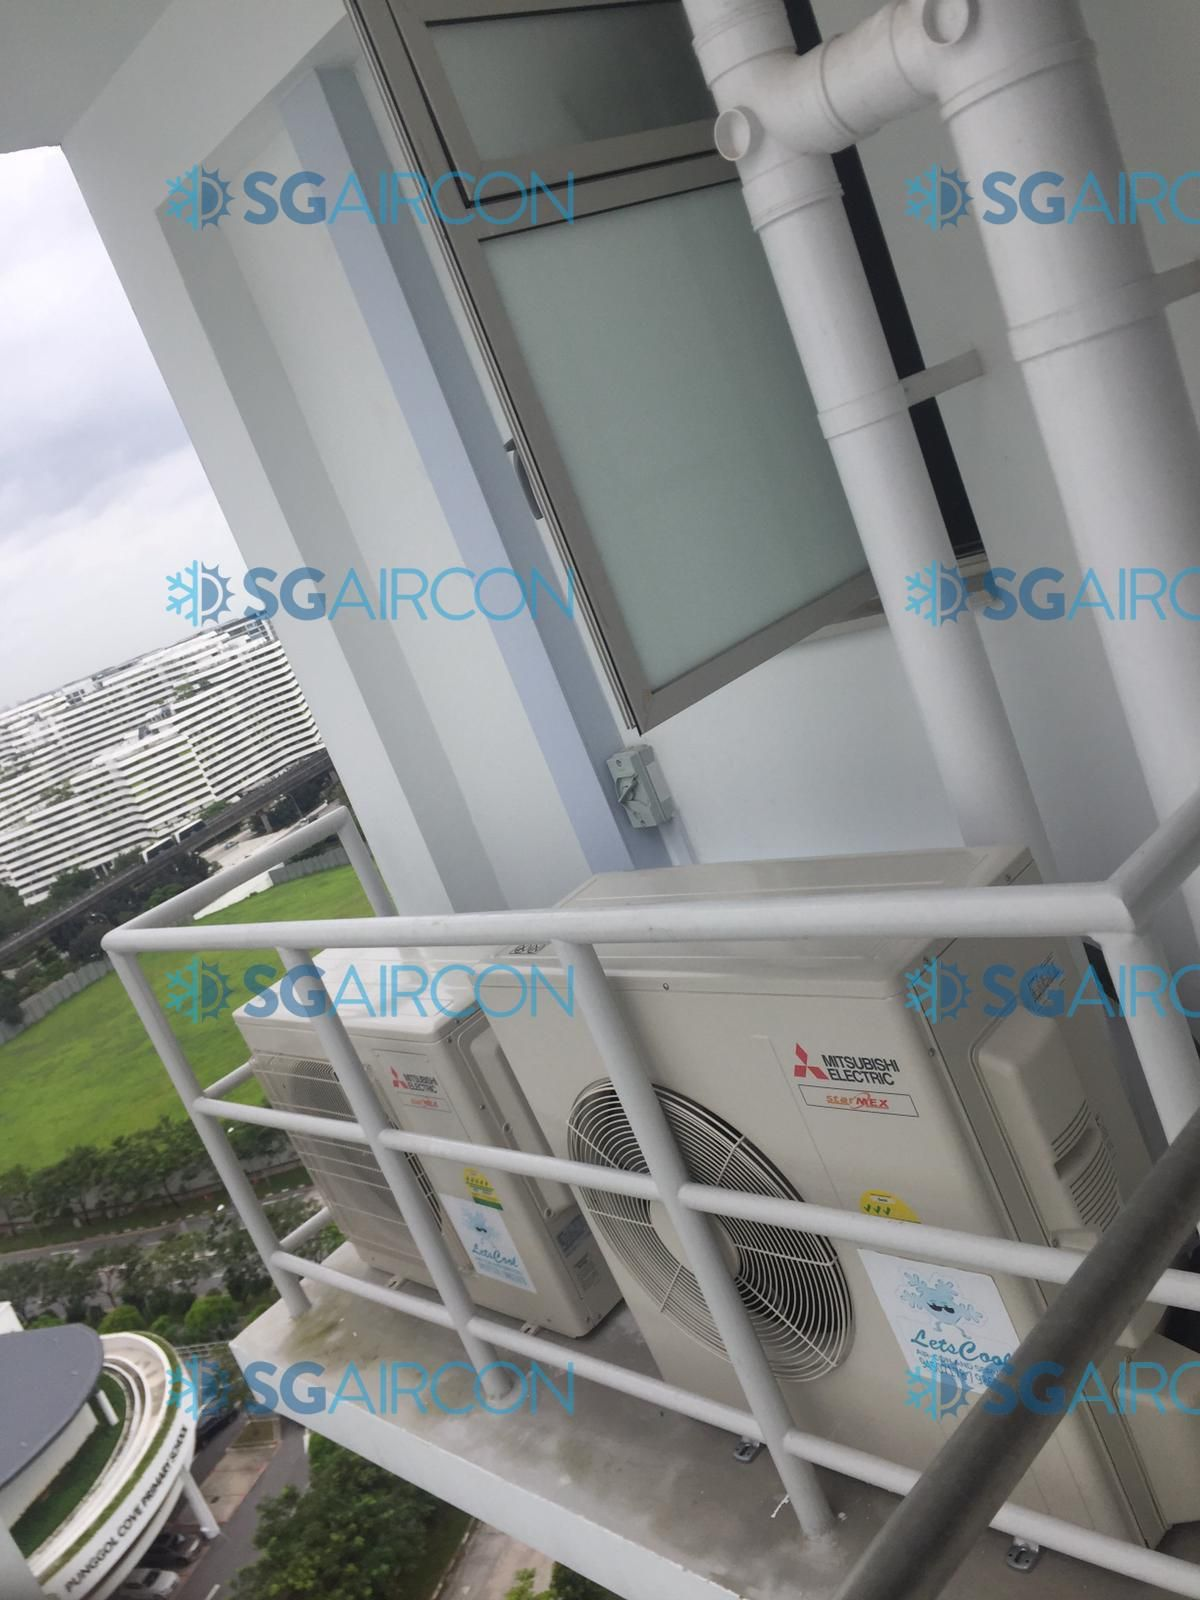 Aircon Gas Inspection Gas Top Up Singapore Sg Aircon Aircon